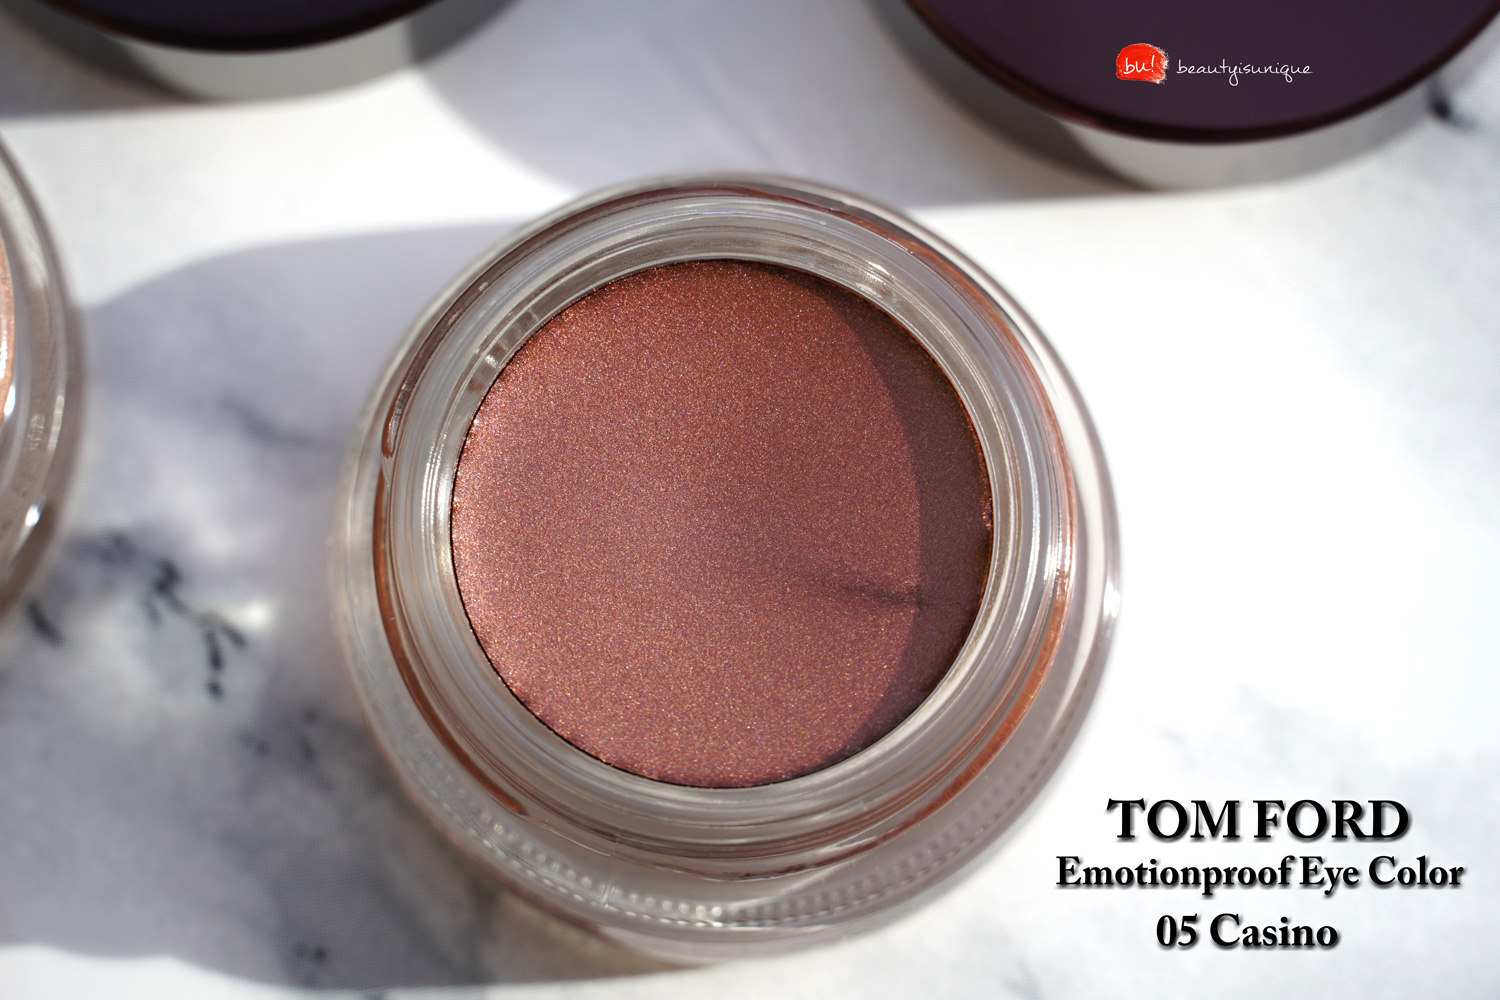 Tom-ford-emotionproof-eye-color-casino